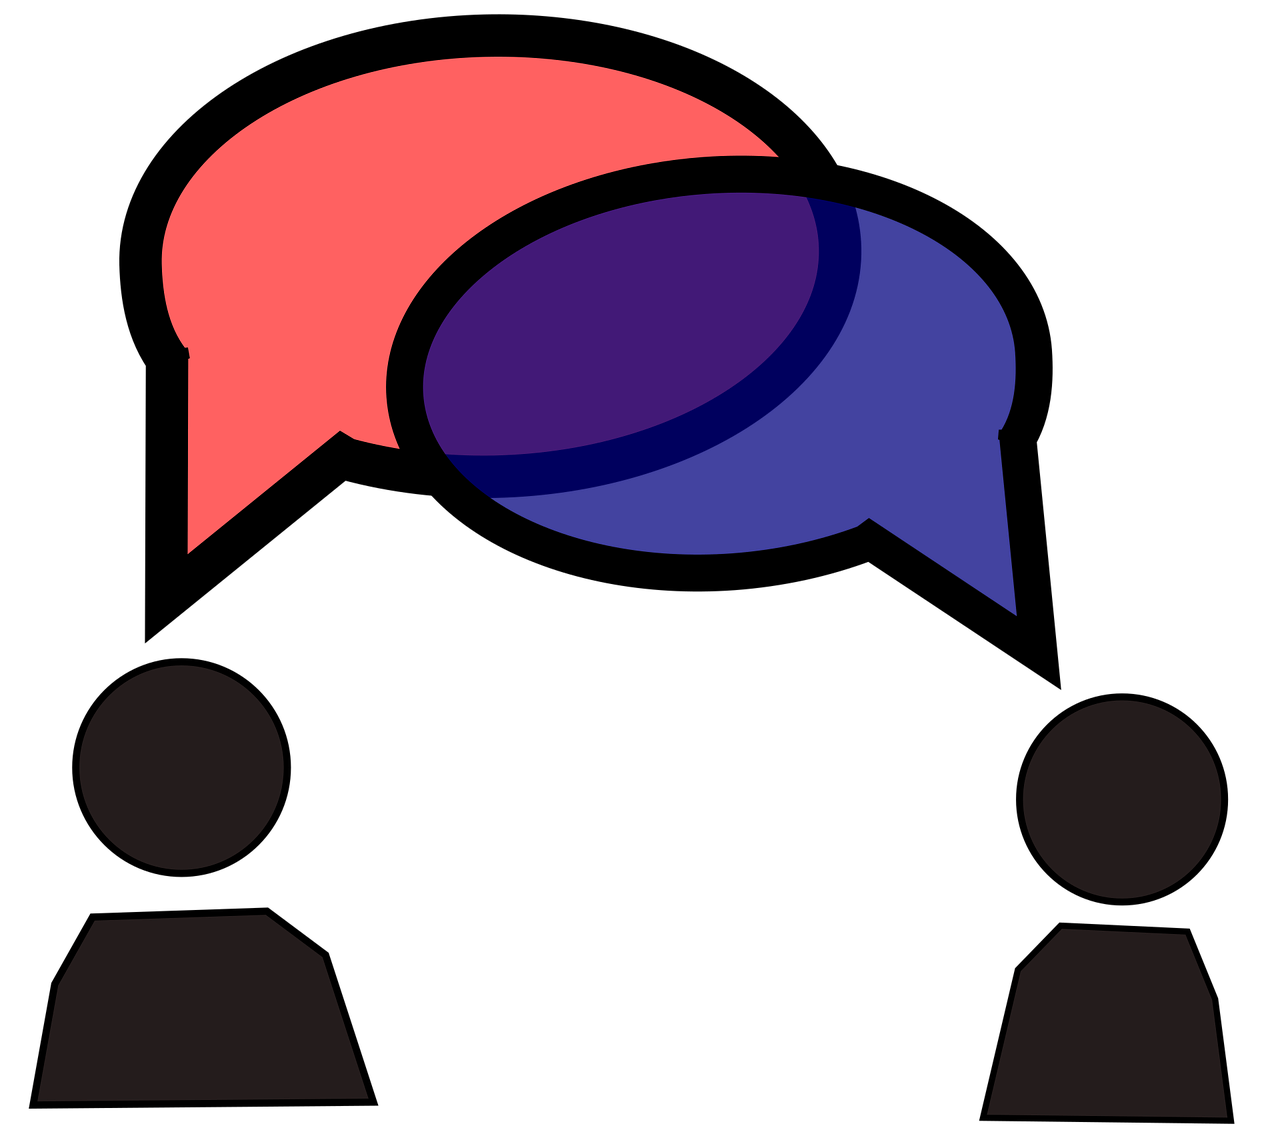 Two people talking with speech bubbles over their heads